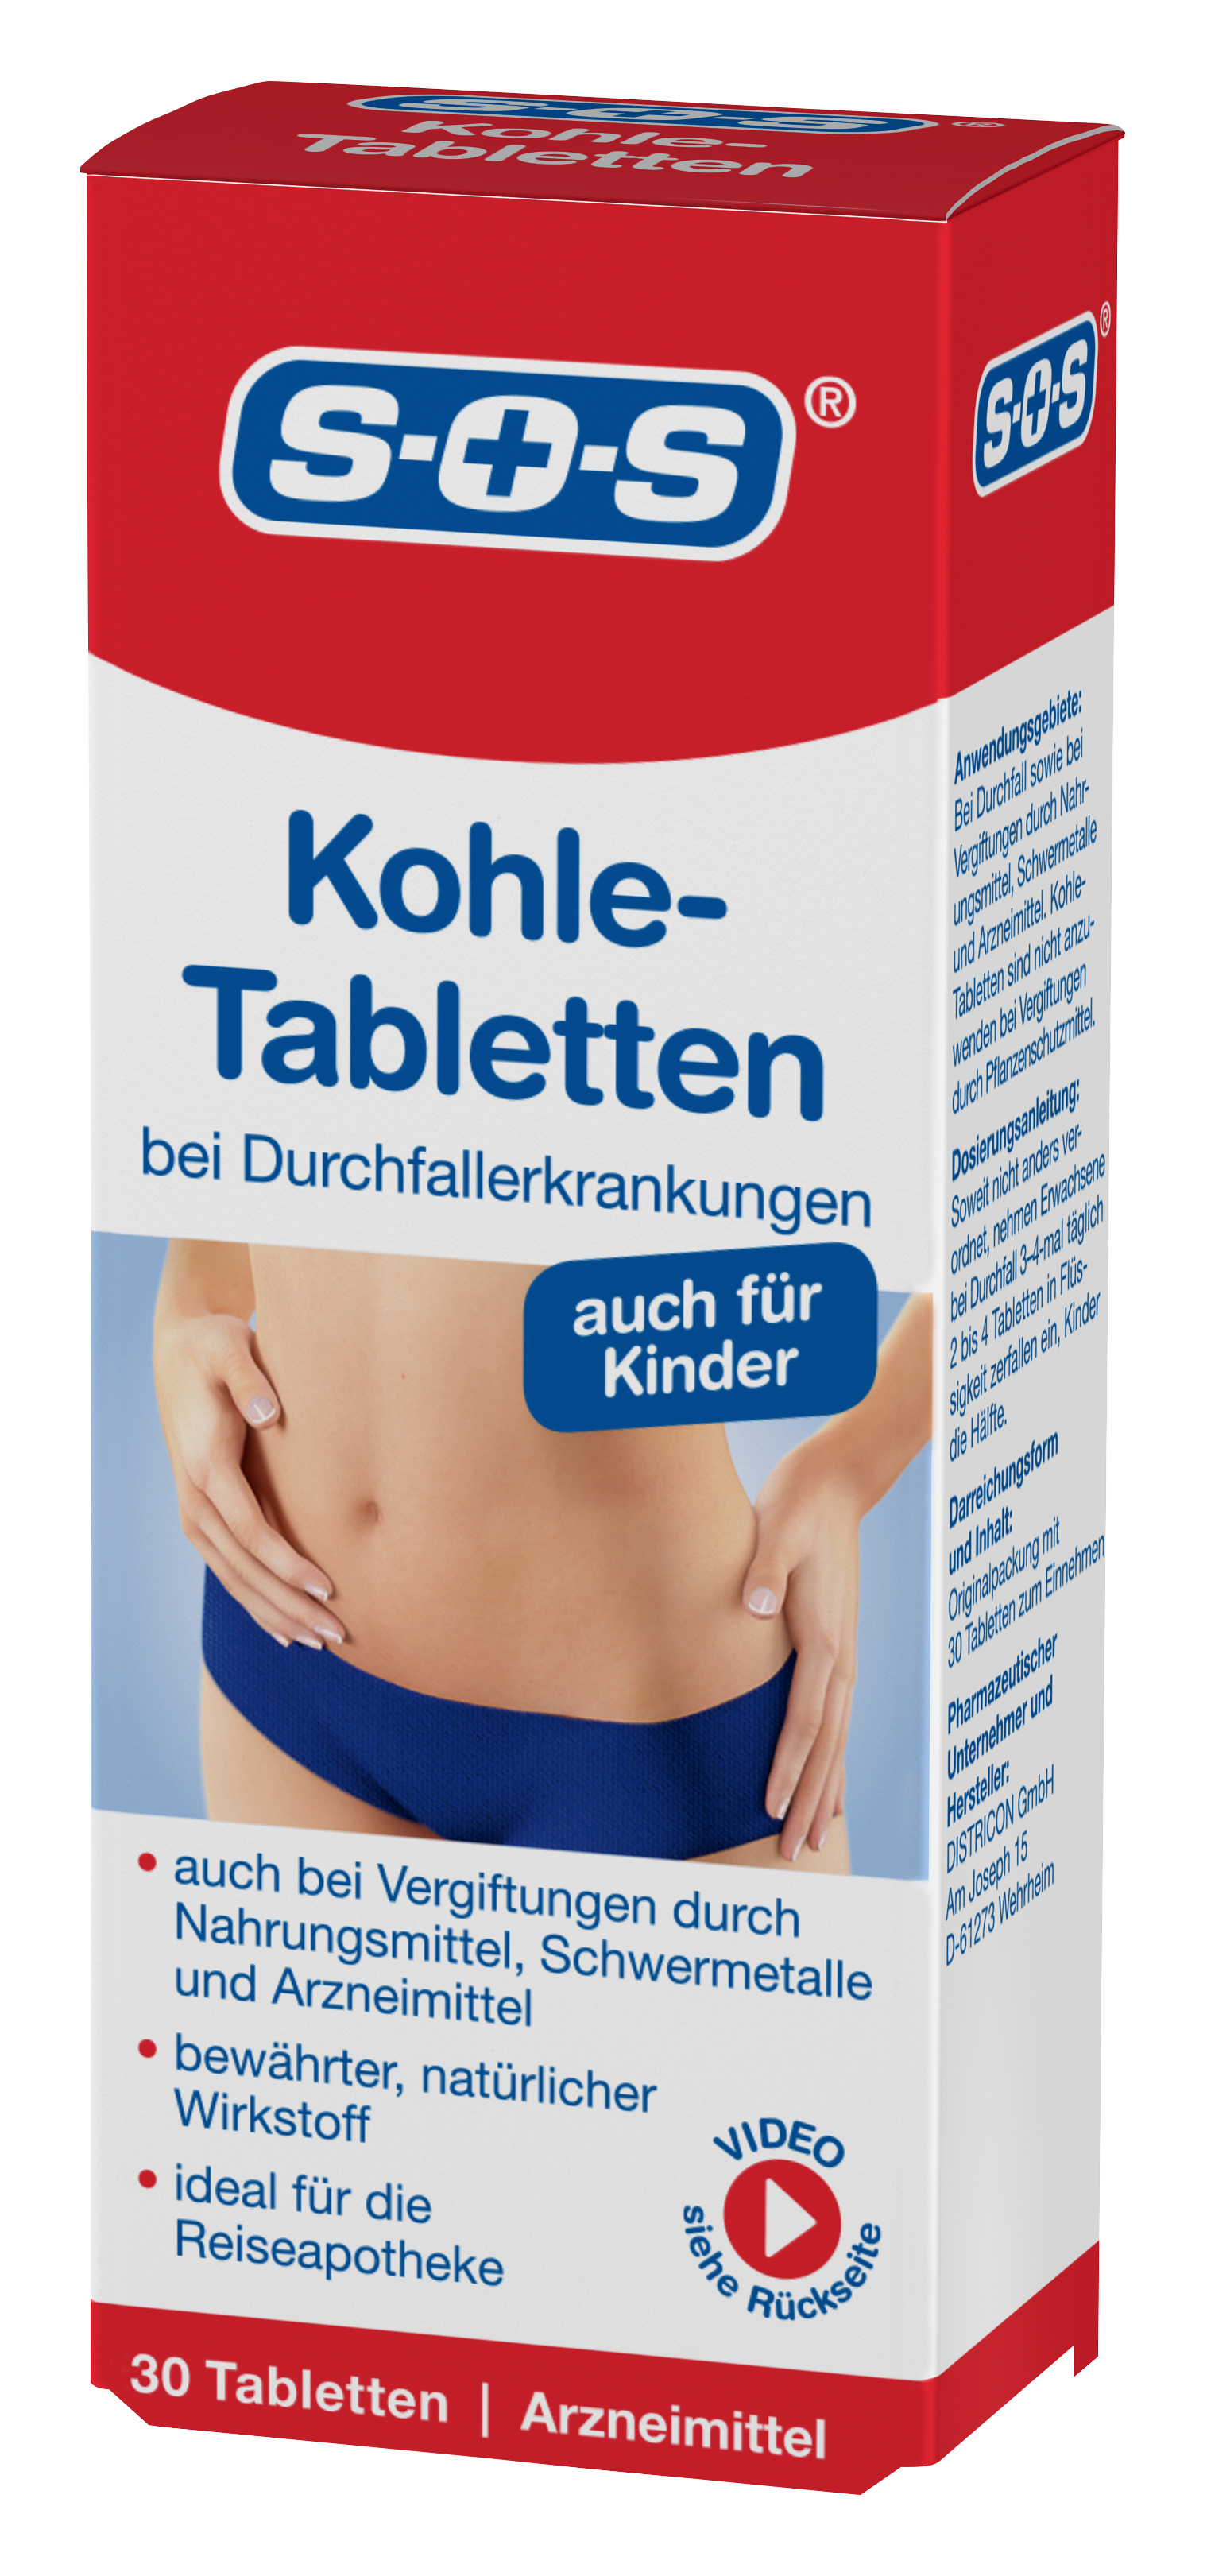 sos kohle tabletten 30 st ck rossmann deutschland mynetfair. Black Bedroom Furniture Sets. Home Design Ideas